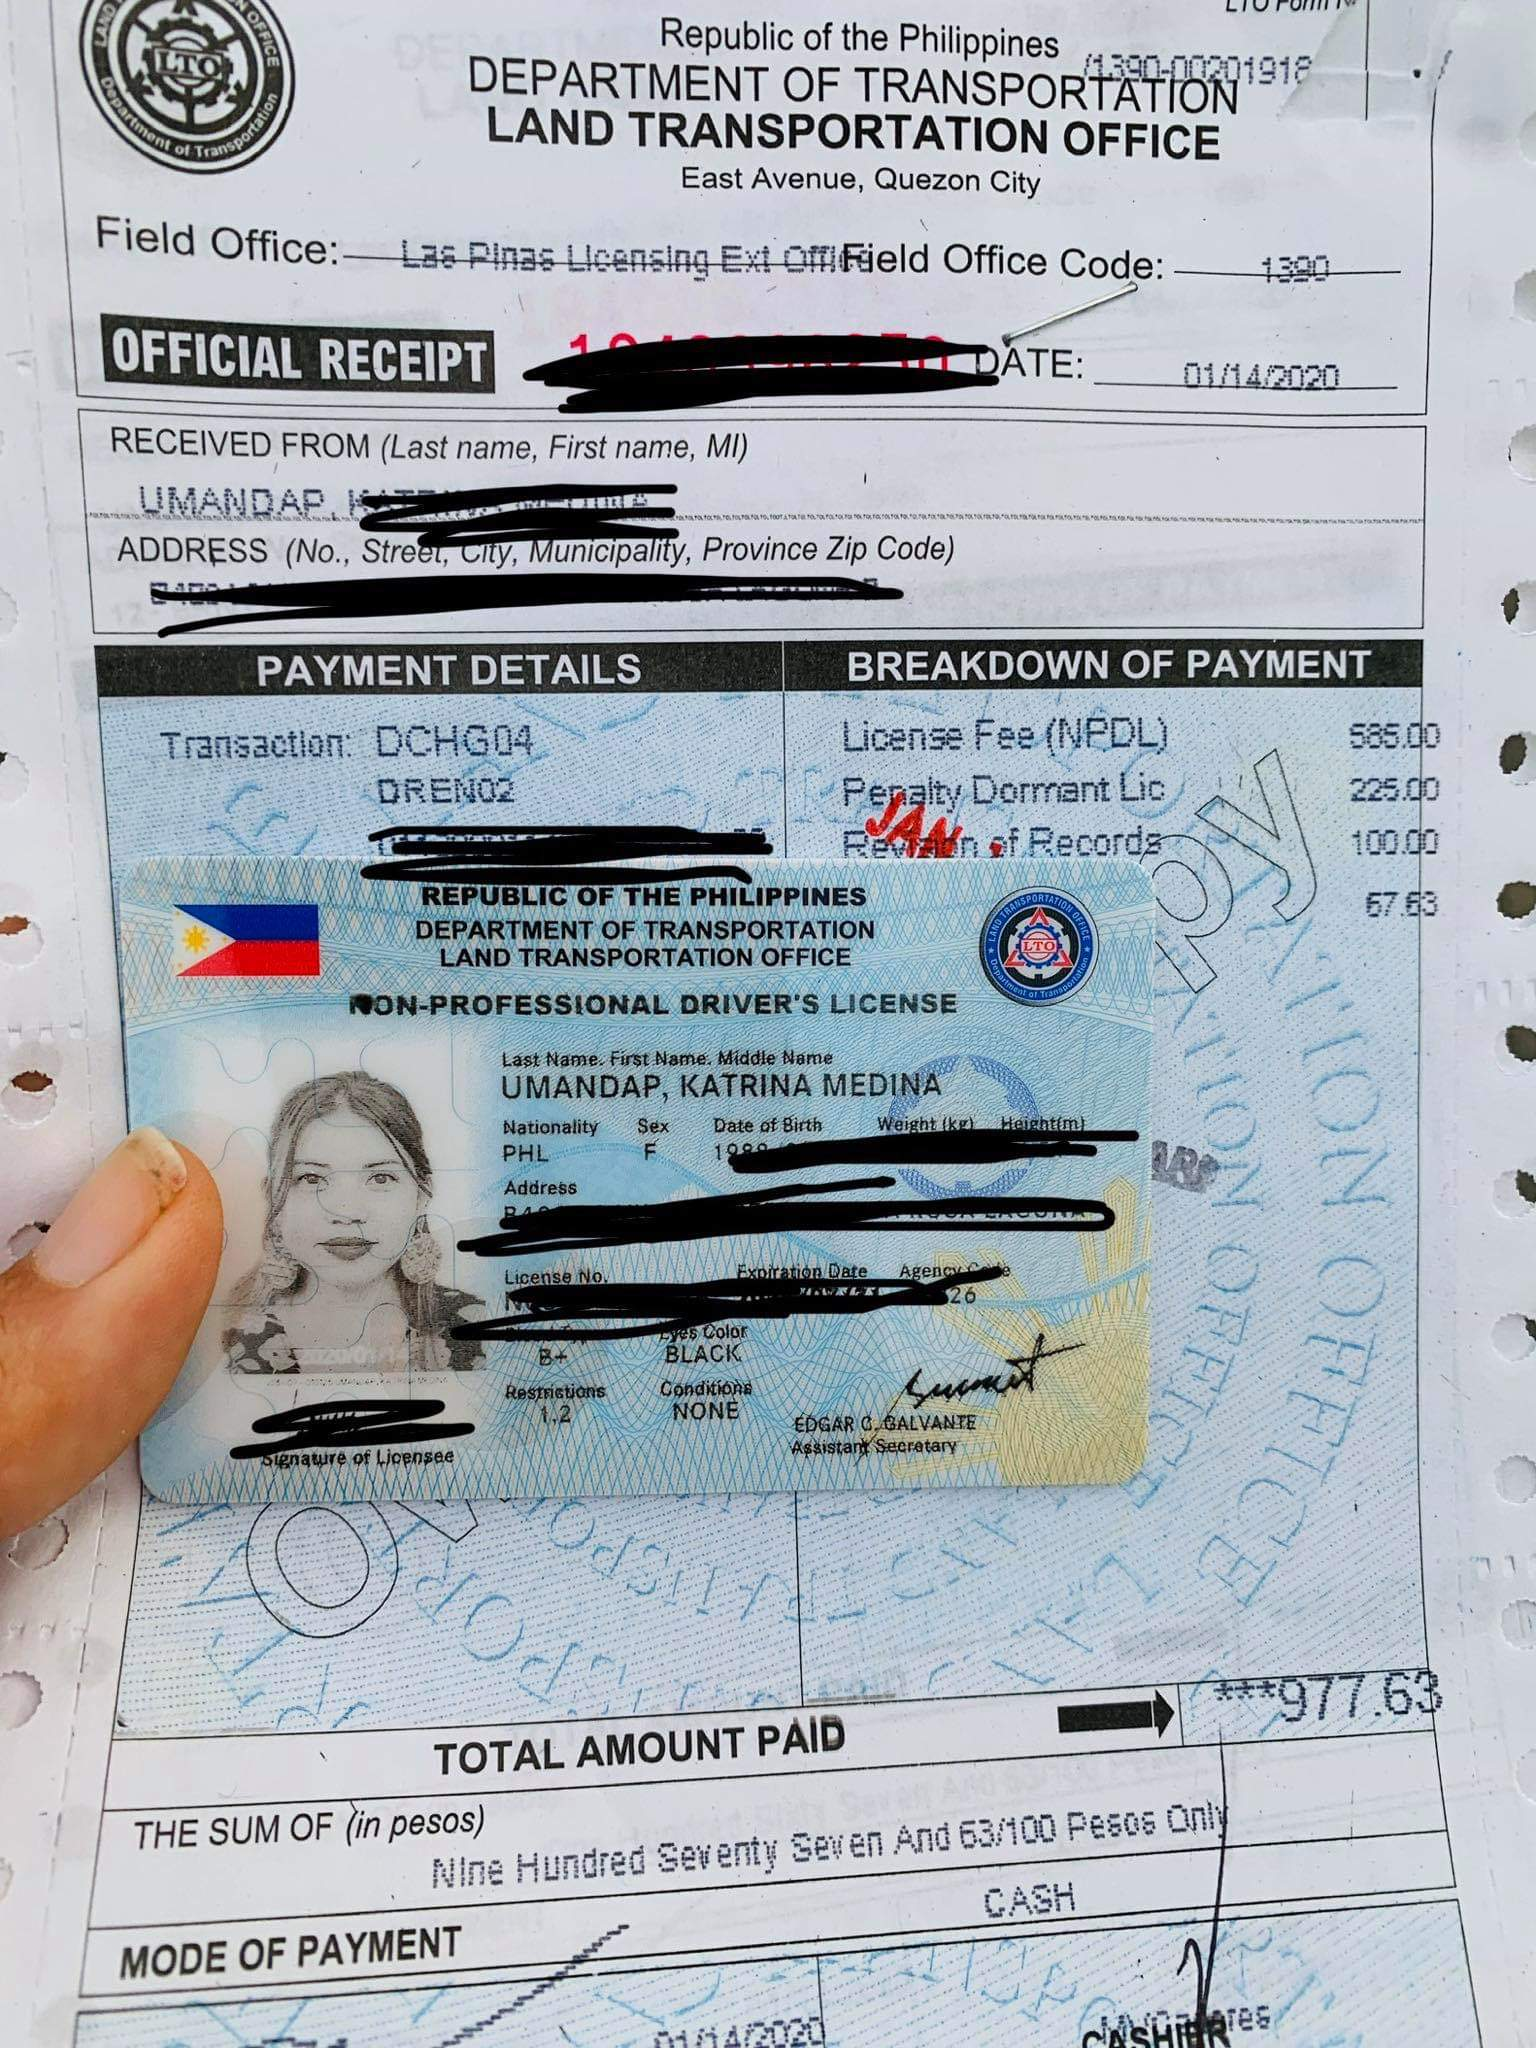 How to Get International Driver's License To Rent a Car and Drive in Europe